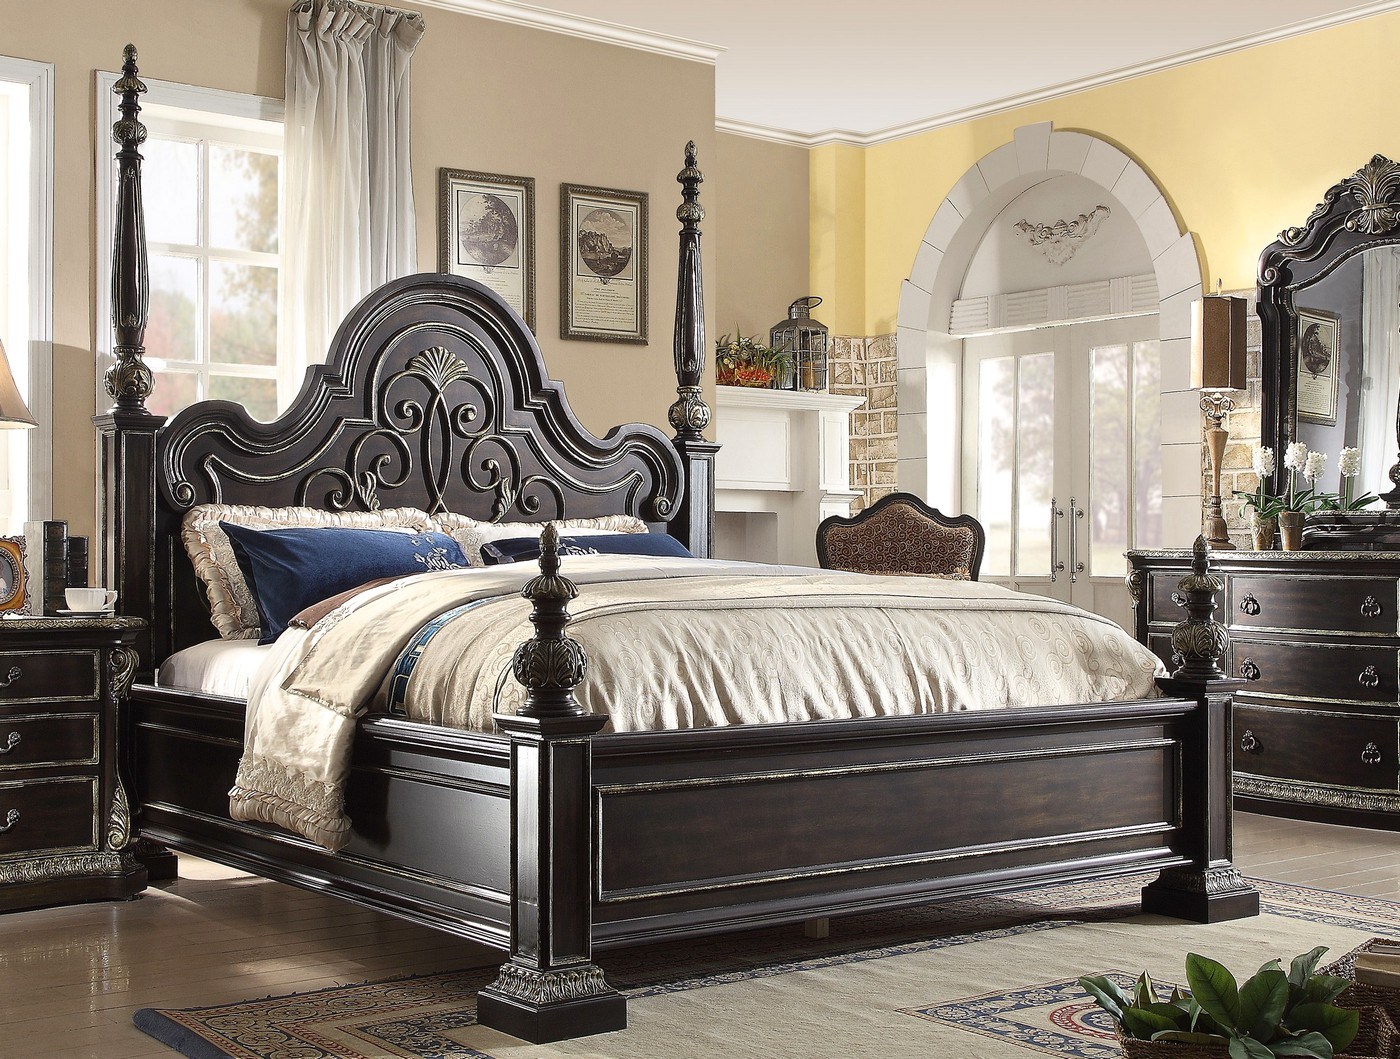 Matteo gothic style king poster bed in ebony finish with for Gothic style bed